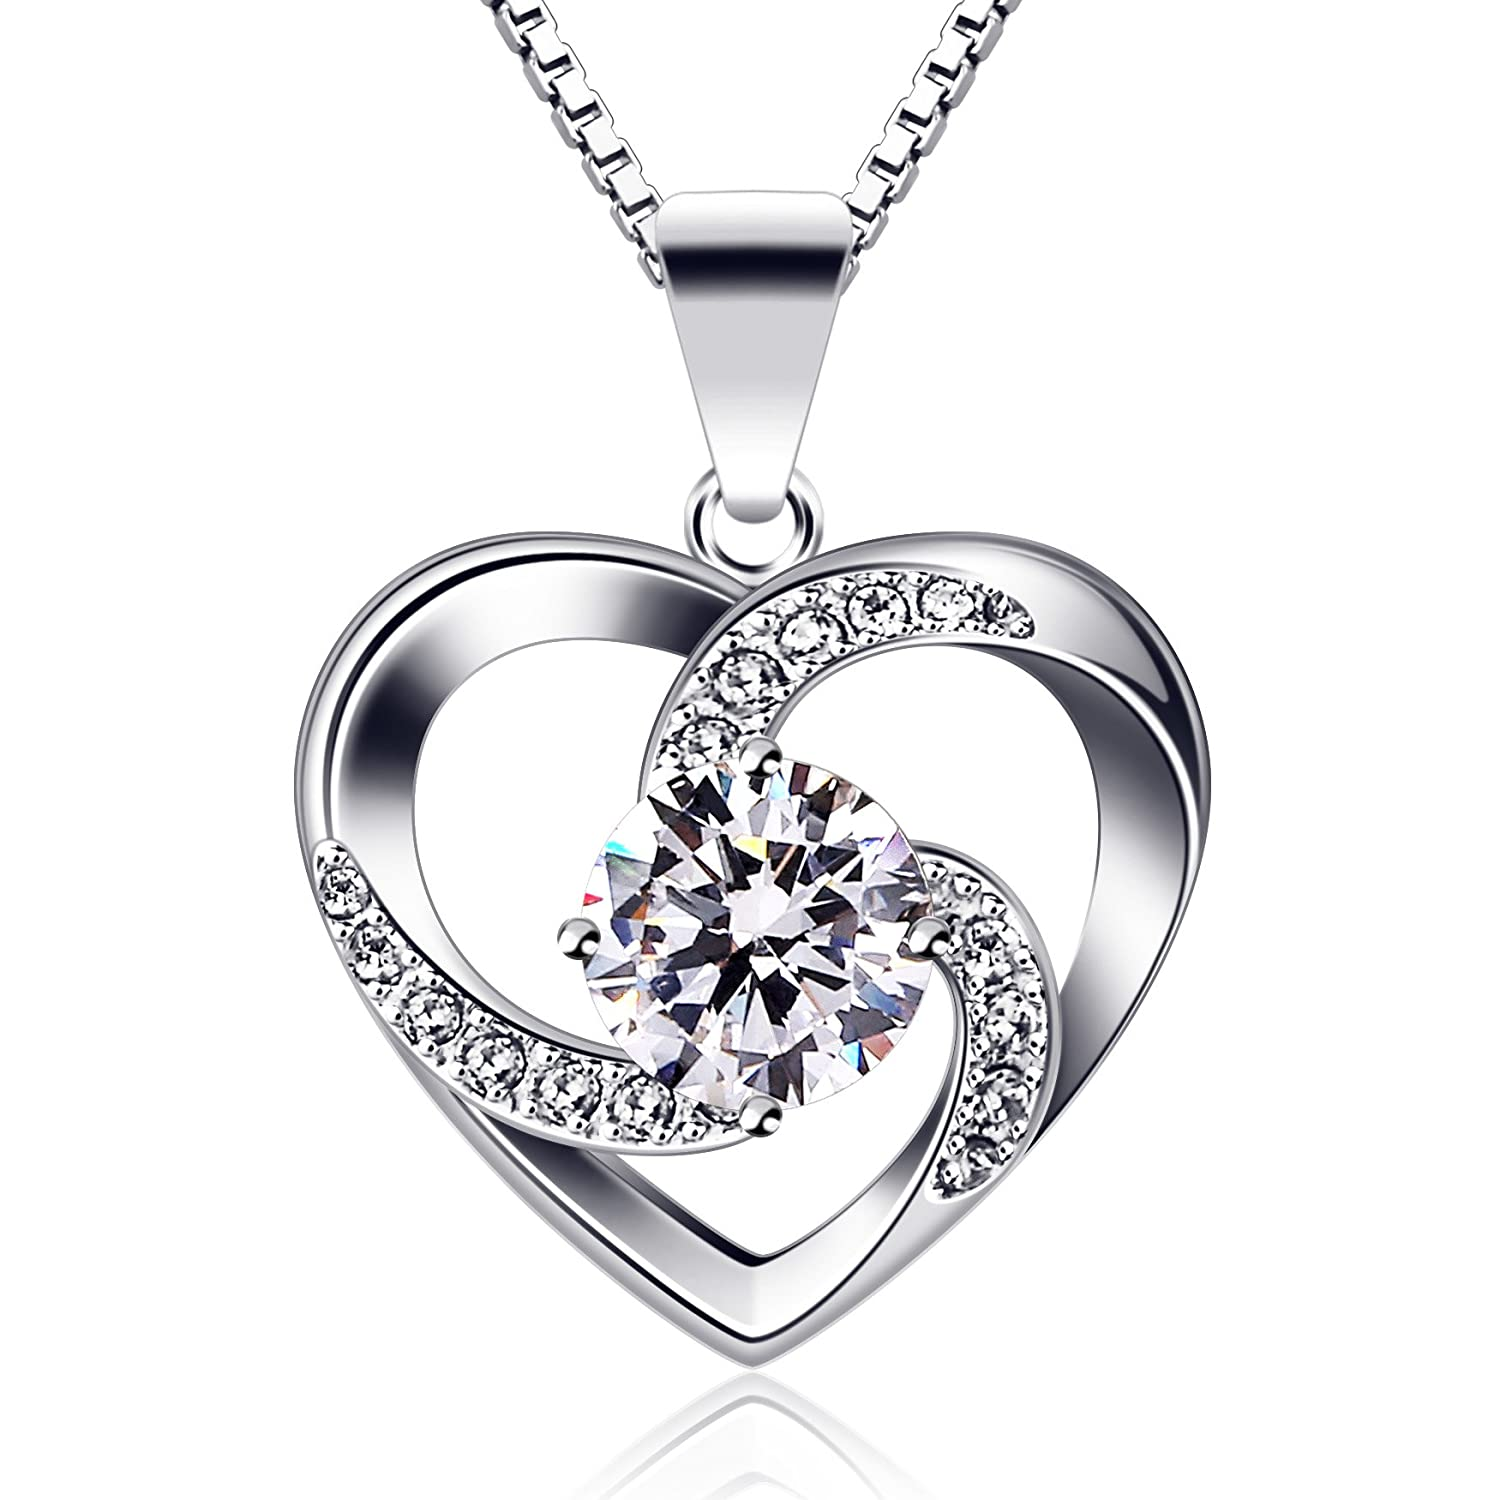 B.Catcher Necklace Chain with Love Heart Ladies Pendant, 925 Sterling Silver Box Chain '' Love is The Luck '' Jewelry Zirconia 45CM Chain Length Gift for Women BC-55